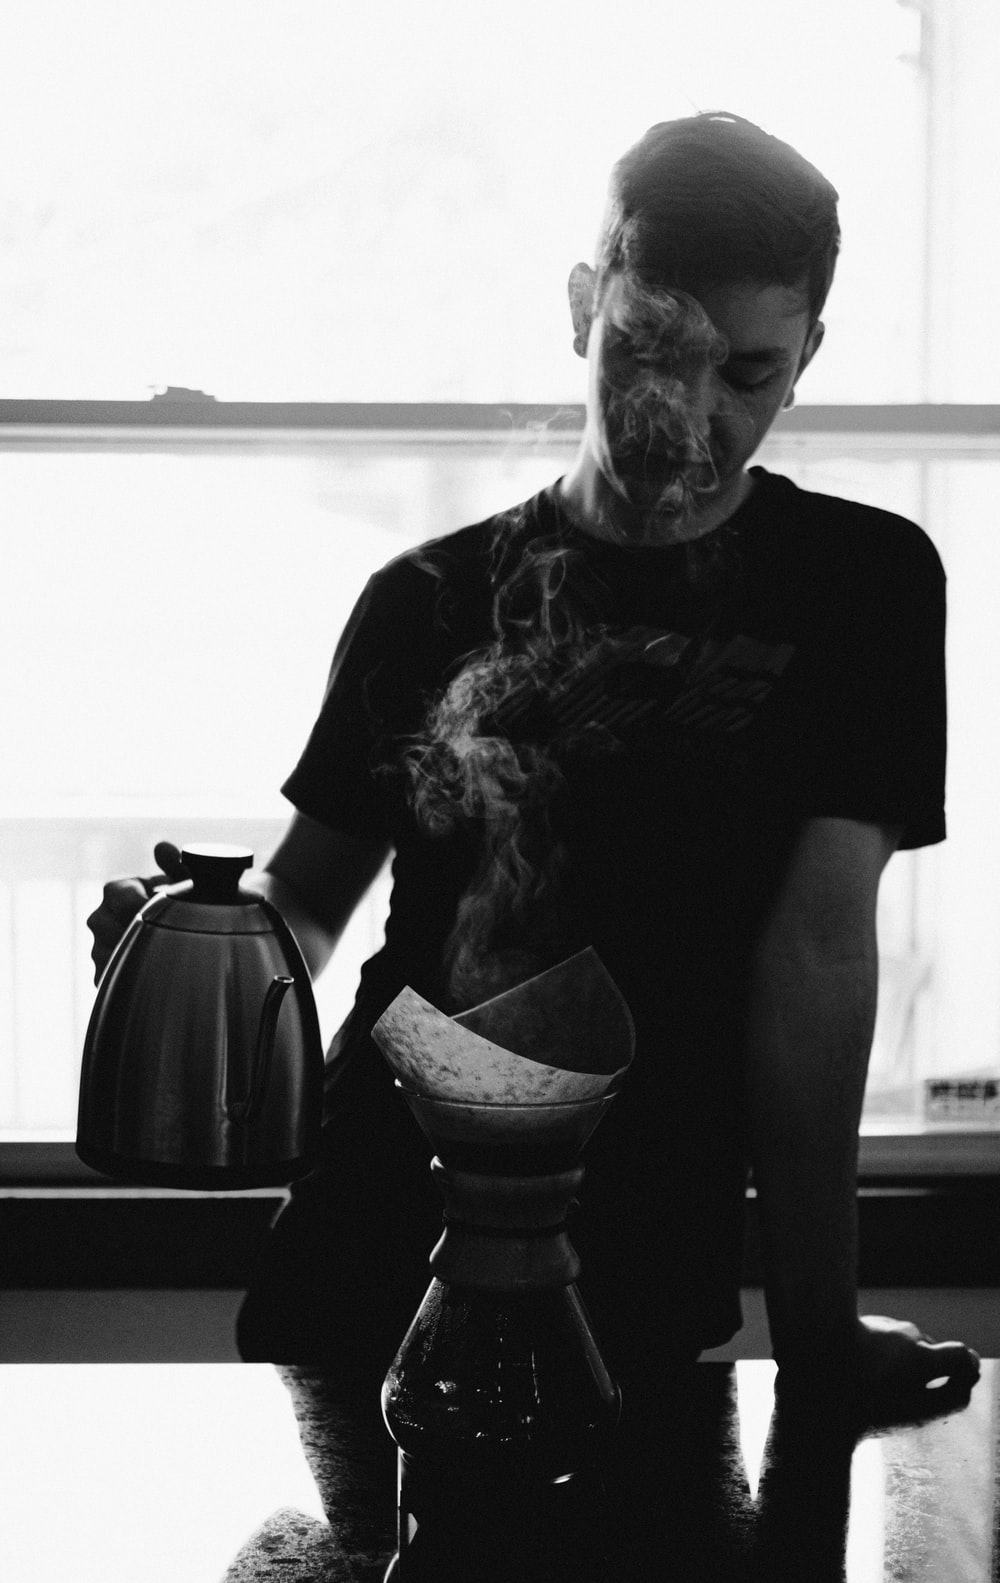 greyscale photography of man holding kettle